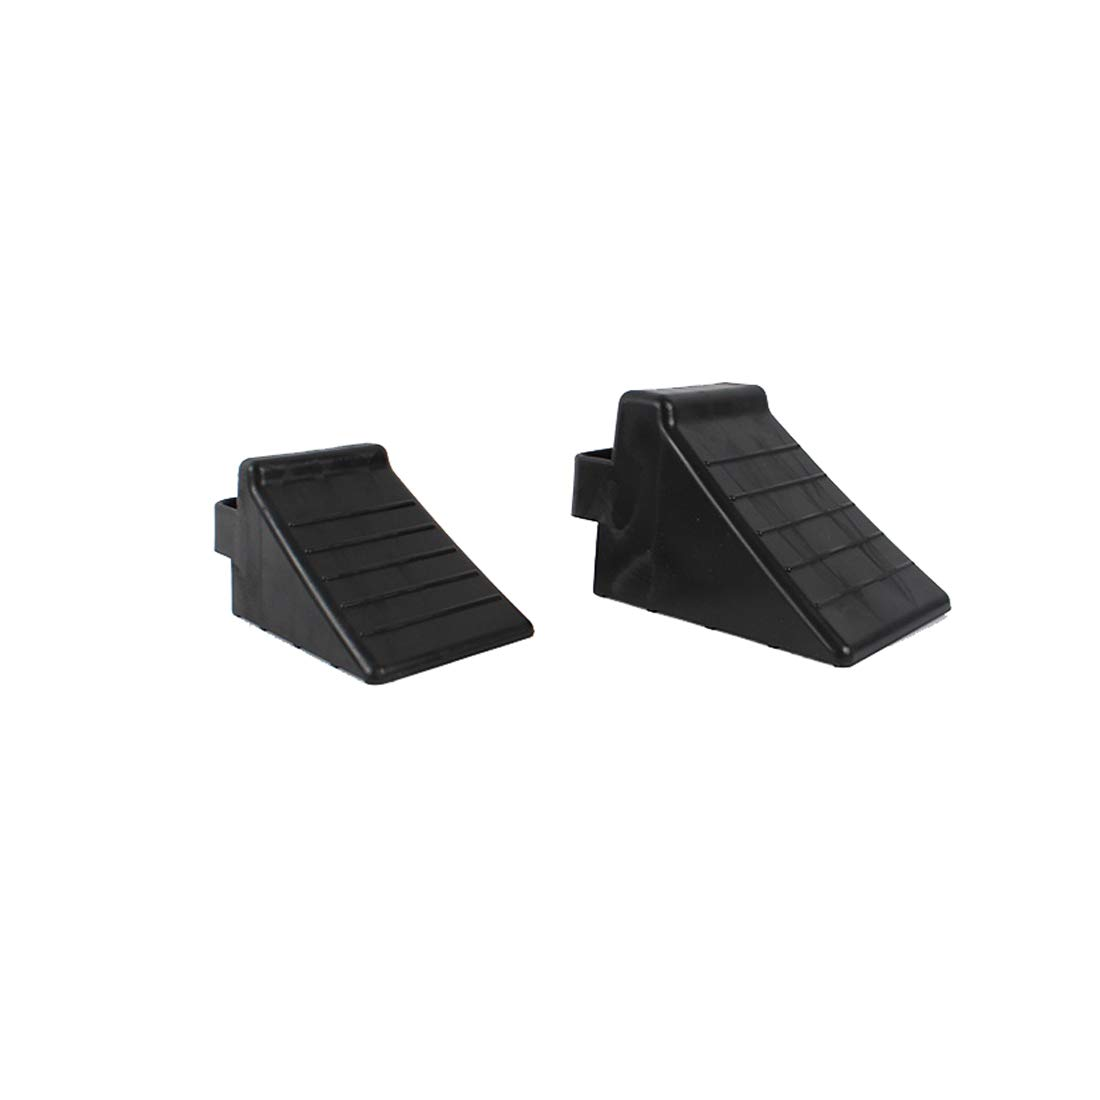 GB 2PCS of Tire Crutch Wheel Chocks for Car Truck Stopper Block Set (Large) by [GBOEM] (Image #1)